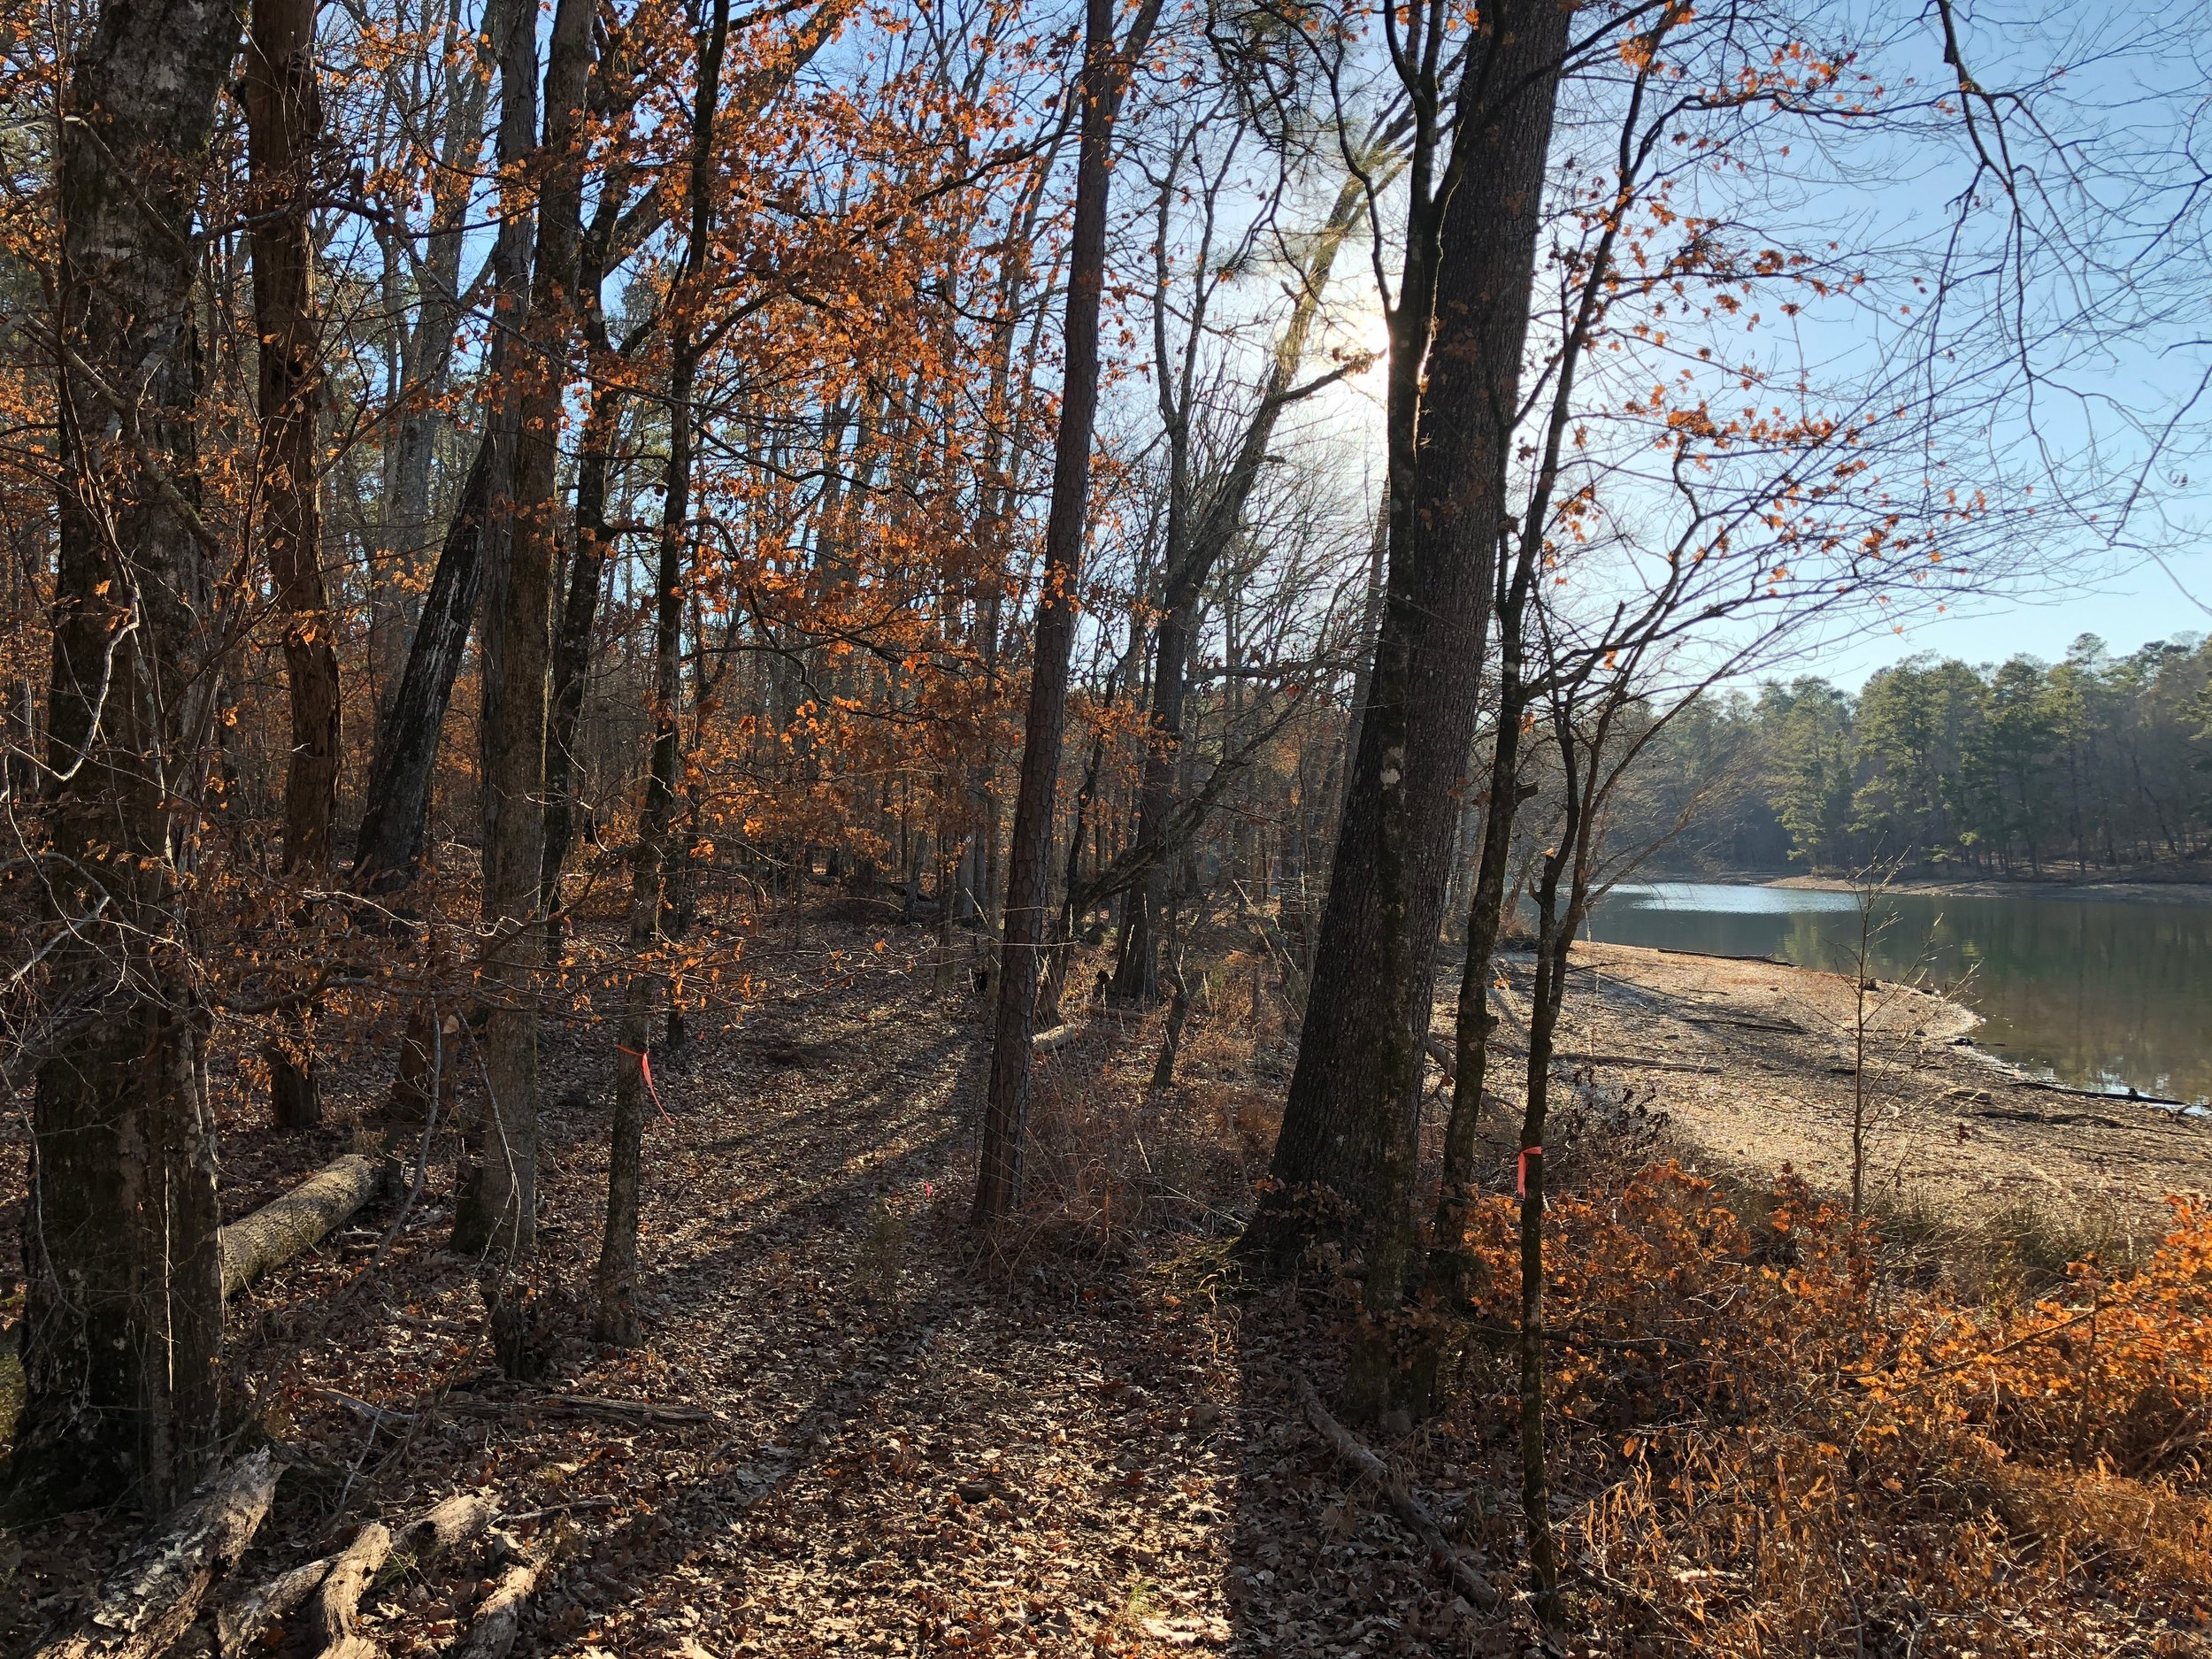 The new 4.5 mile Lake Greenwood Trail system opened in the fall of 2017